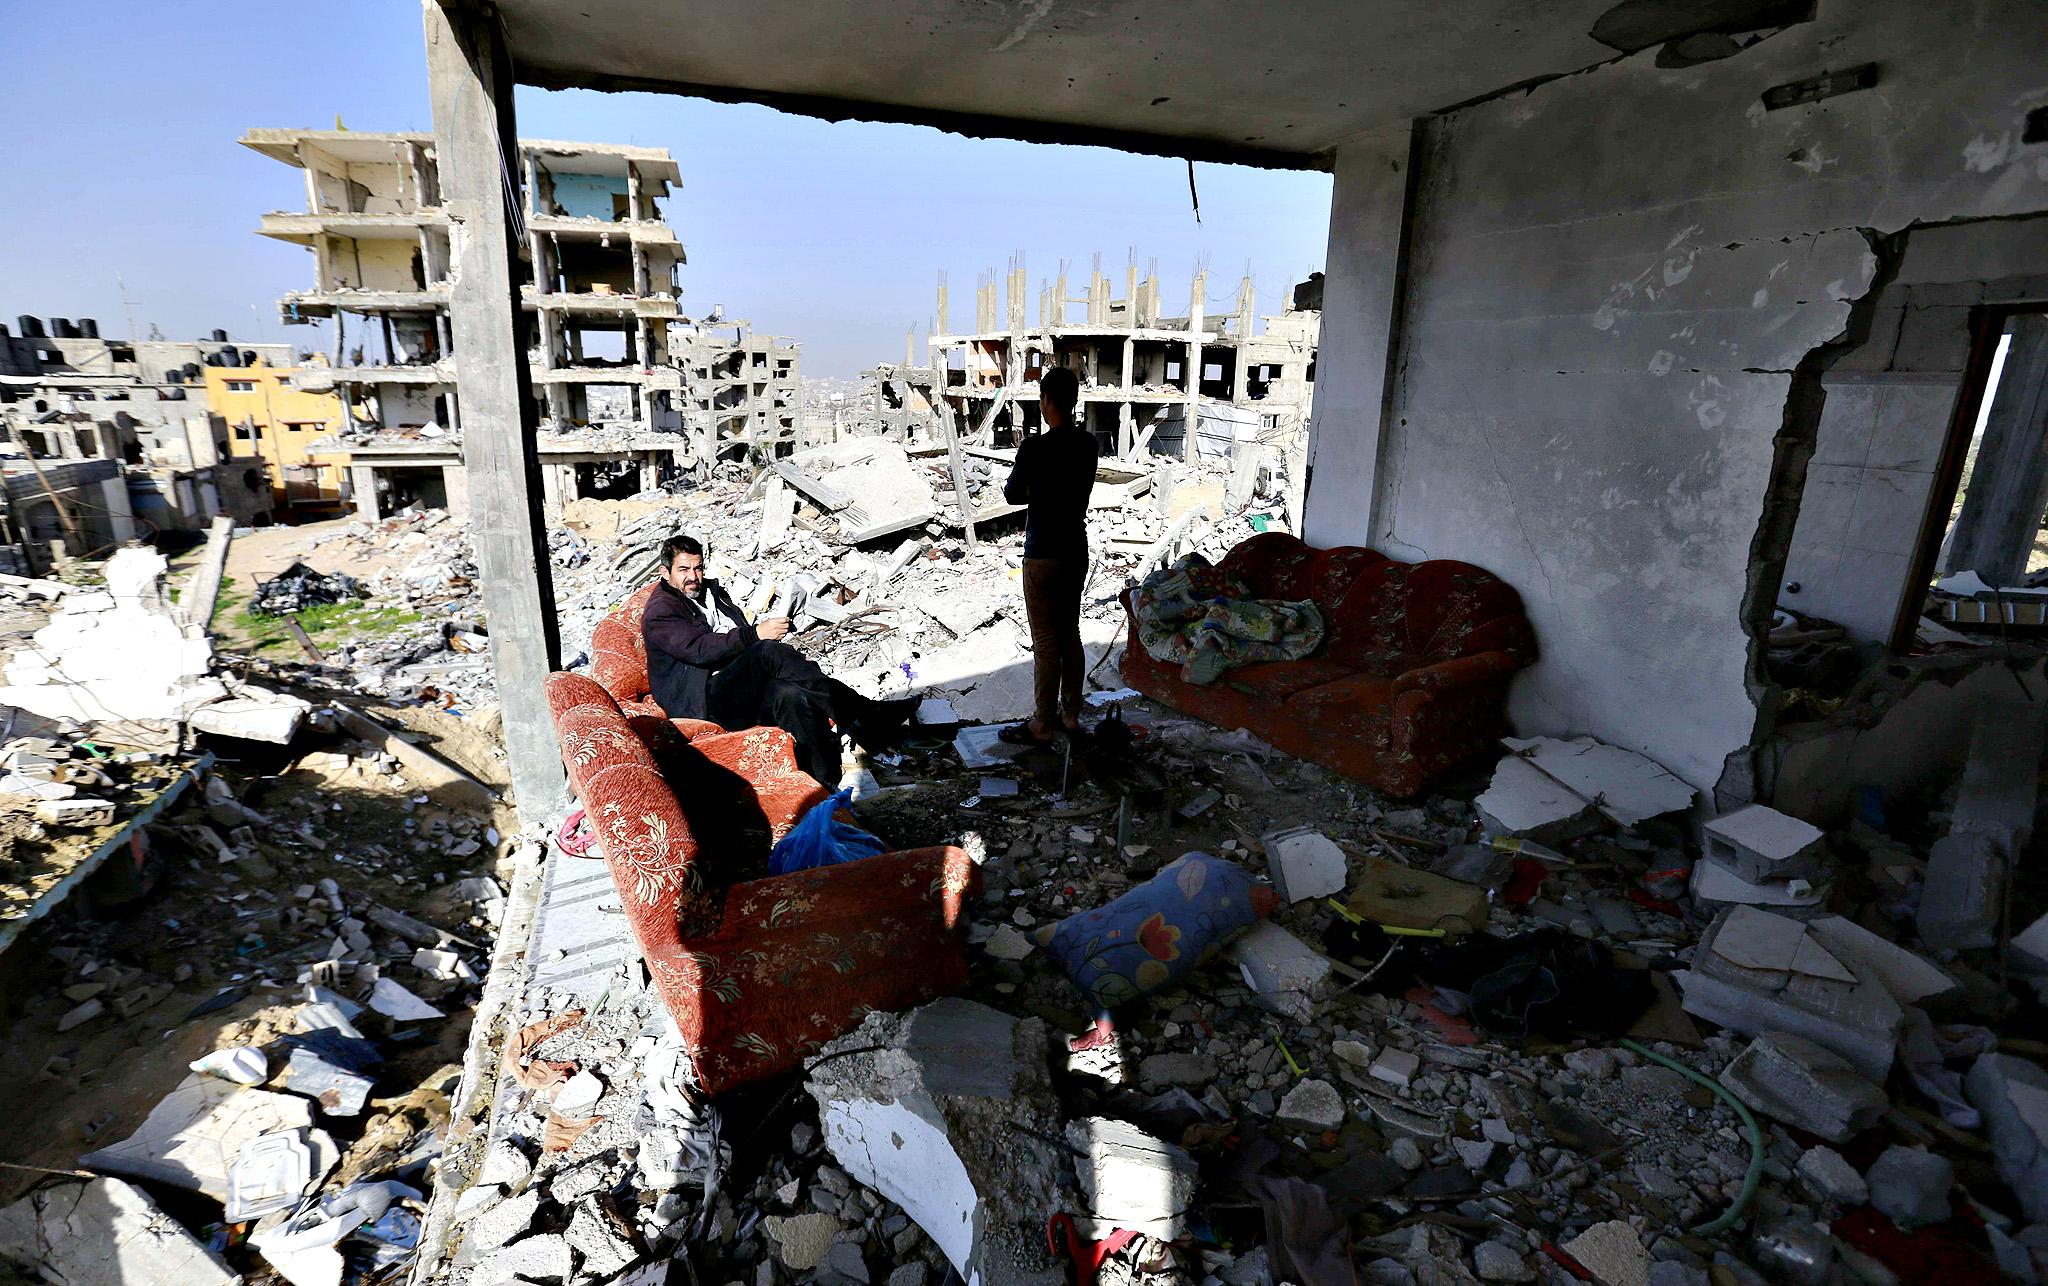 A Palestinian man and his son are seen in the living room of their house which was destroyed during the 50-day Gaza war between Israel and Hamas-led militants, on Decembre 10, 2014 in Gaza City. The Israeli military committed war crimes during its Gaza offensive this summer and must be investigated, human rights monitor Amnesty International yesterday.